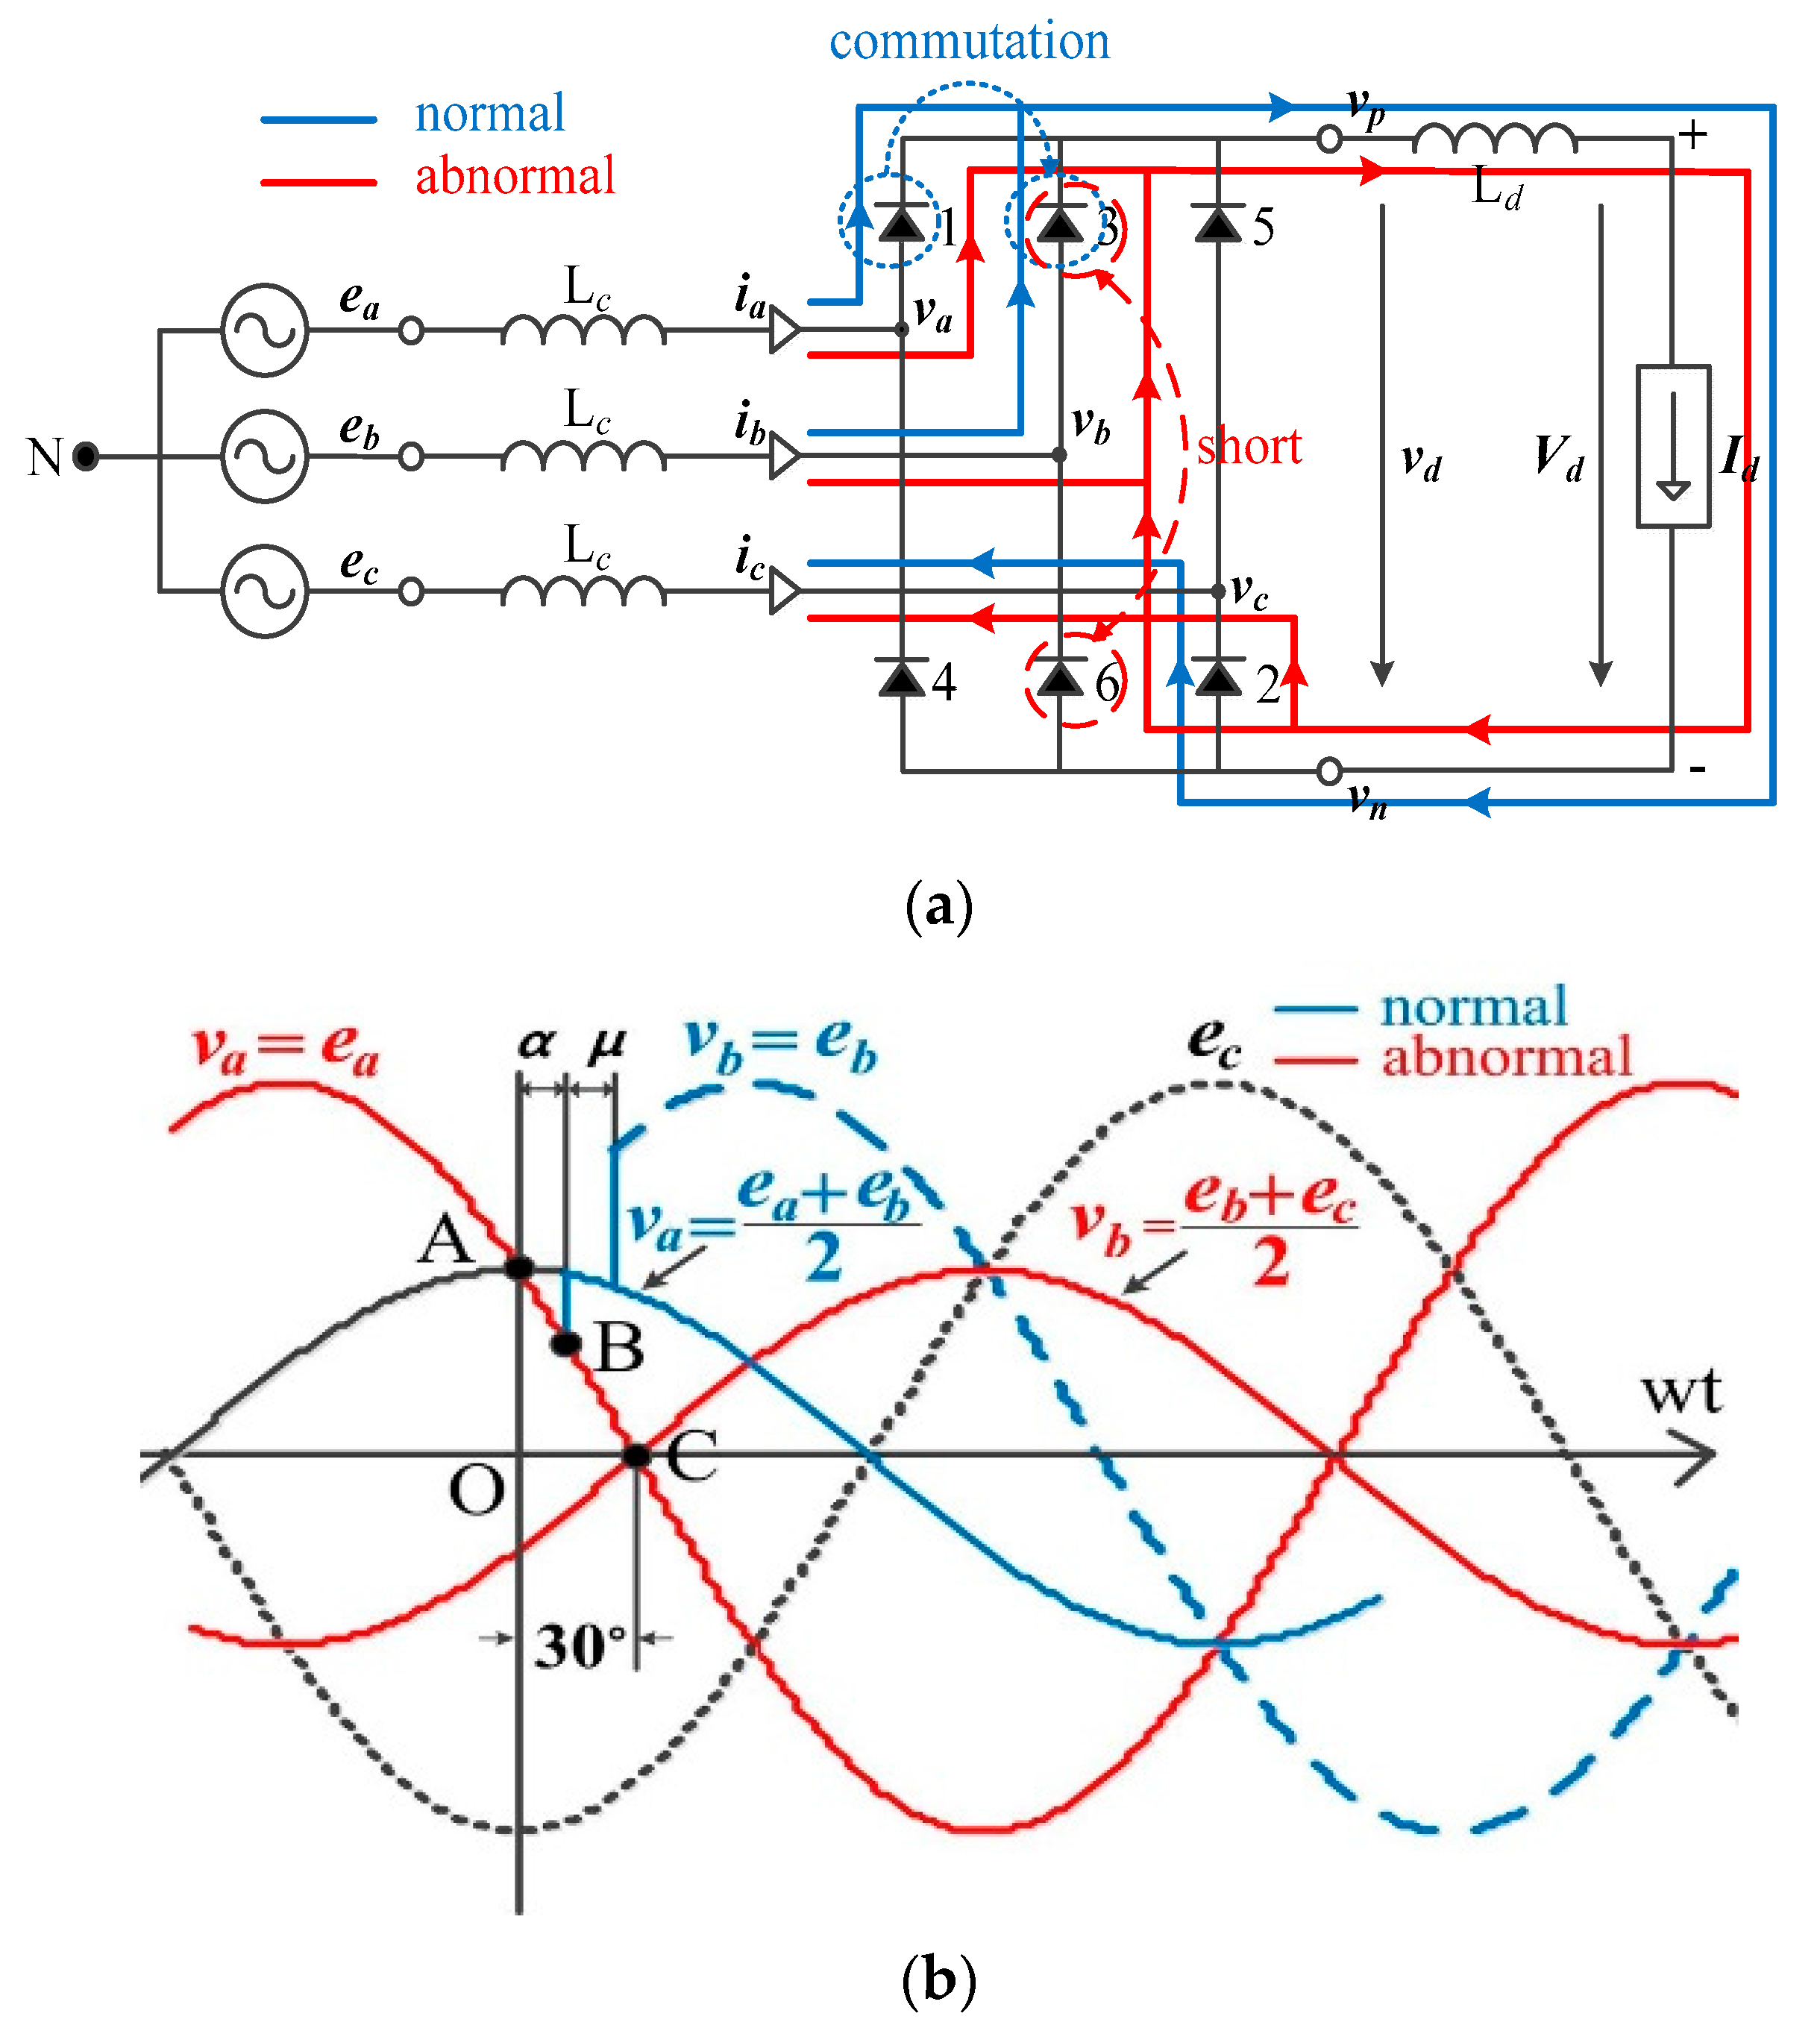 Energies Free Full Text Modeling Of Hvdc System To Improve How A Circuit Breaker Works Rg Industries Inc 10 01543 G002